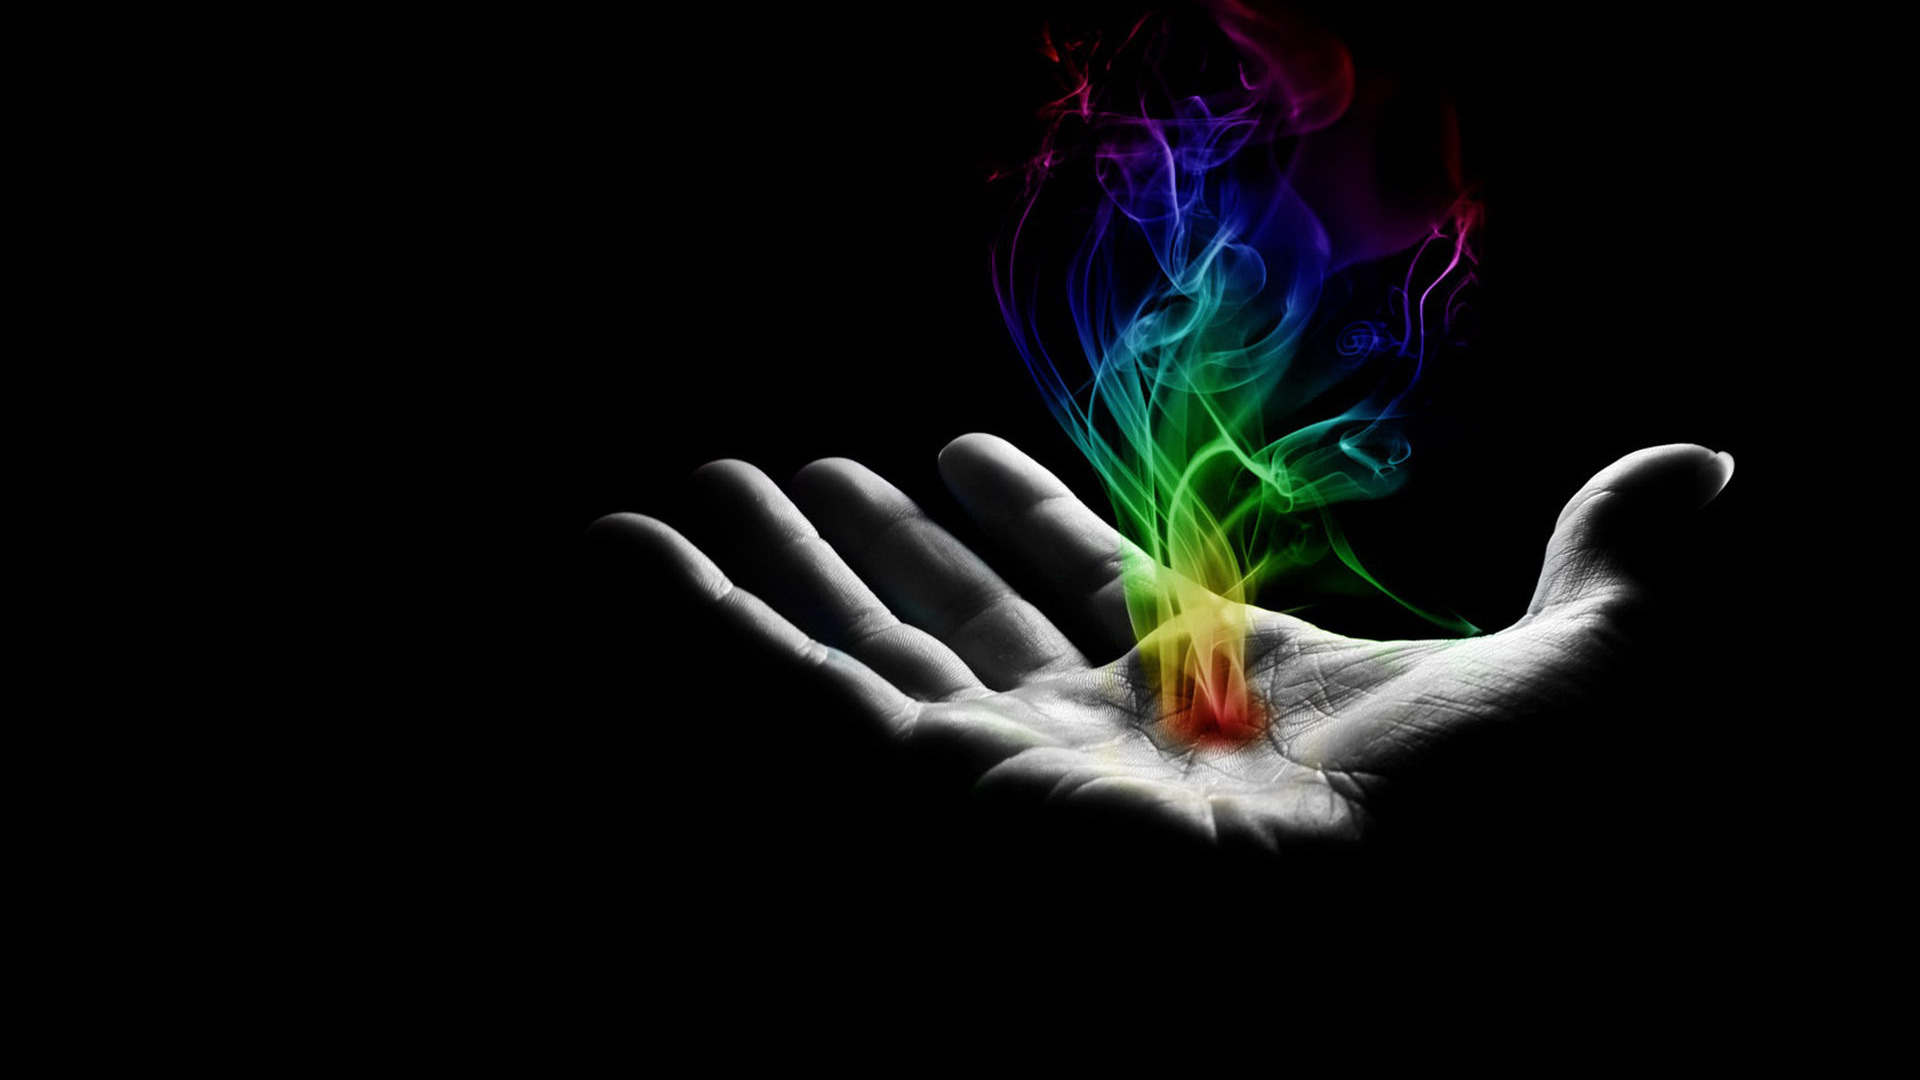 Colorful smoke in hand wallpaper 620 1920x1080